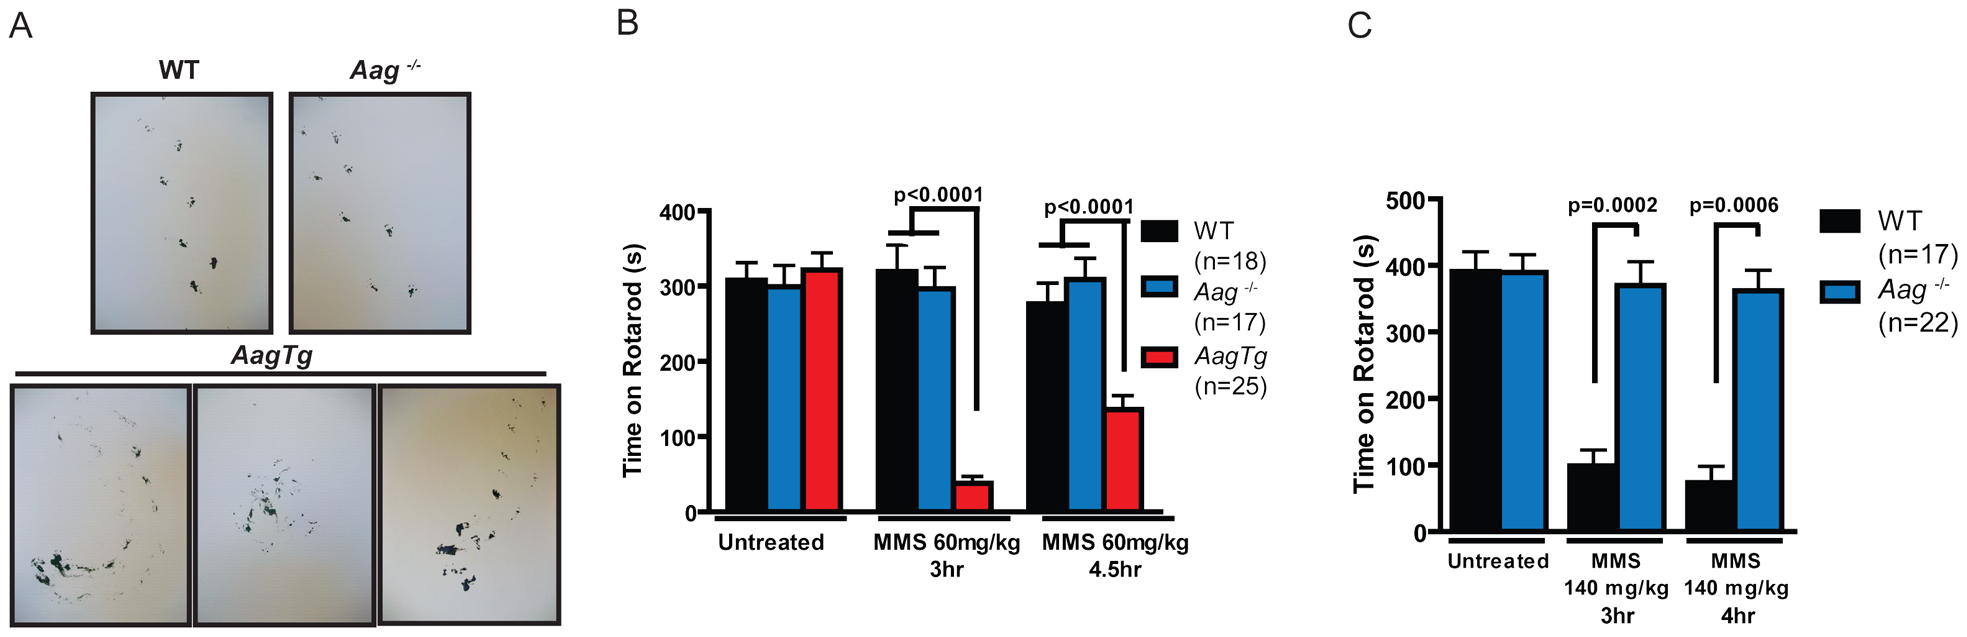 MMS induces an Aag-dependent decrease in motor function.